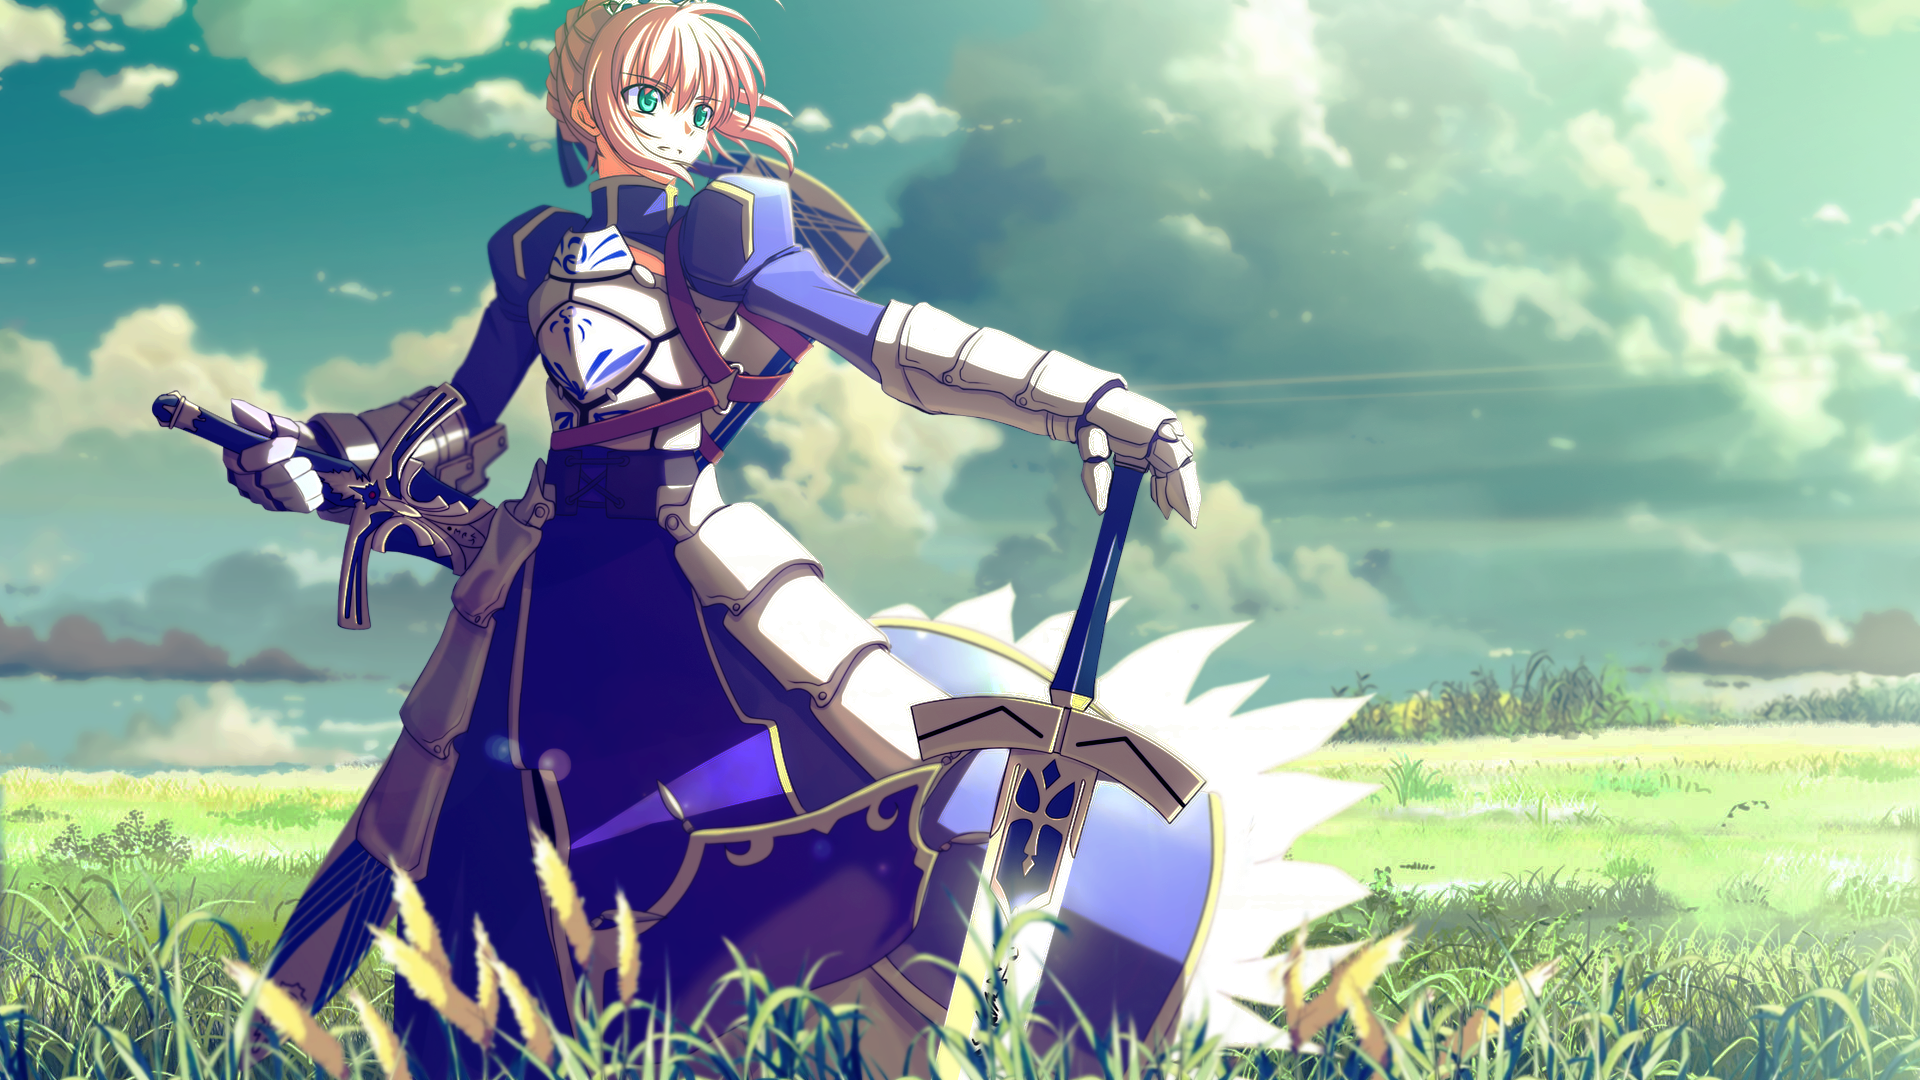 fate/stay night wallpaper 1 hd wallpaper - animewp